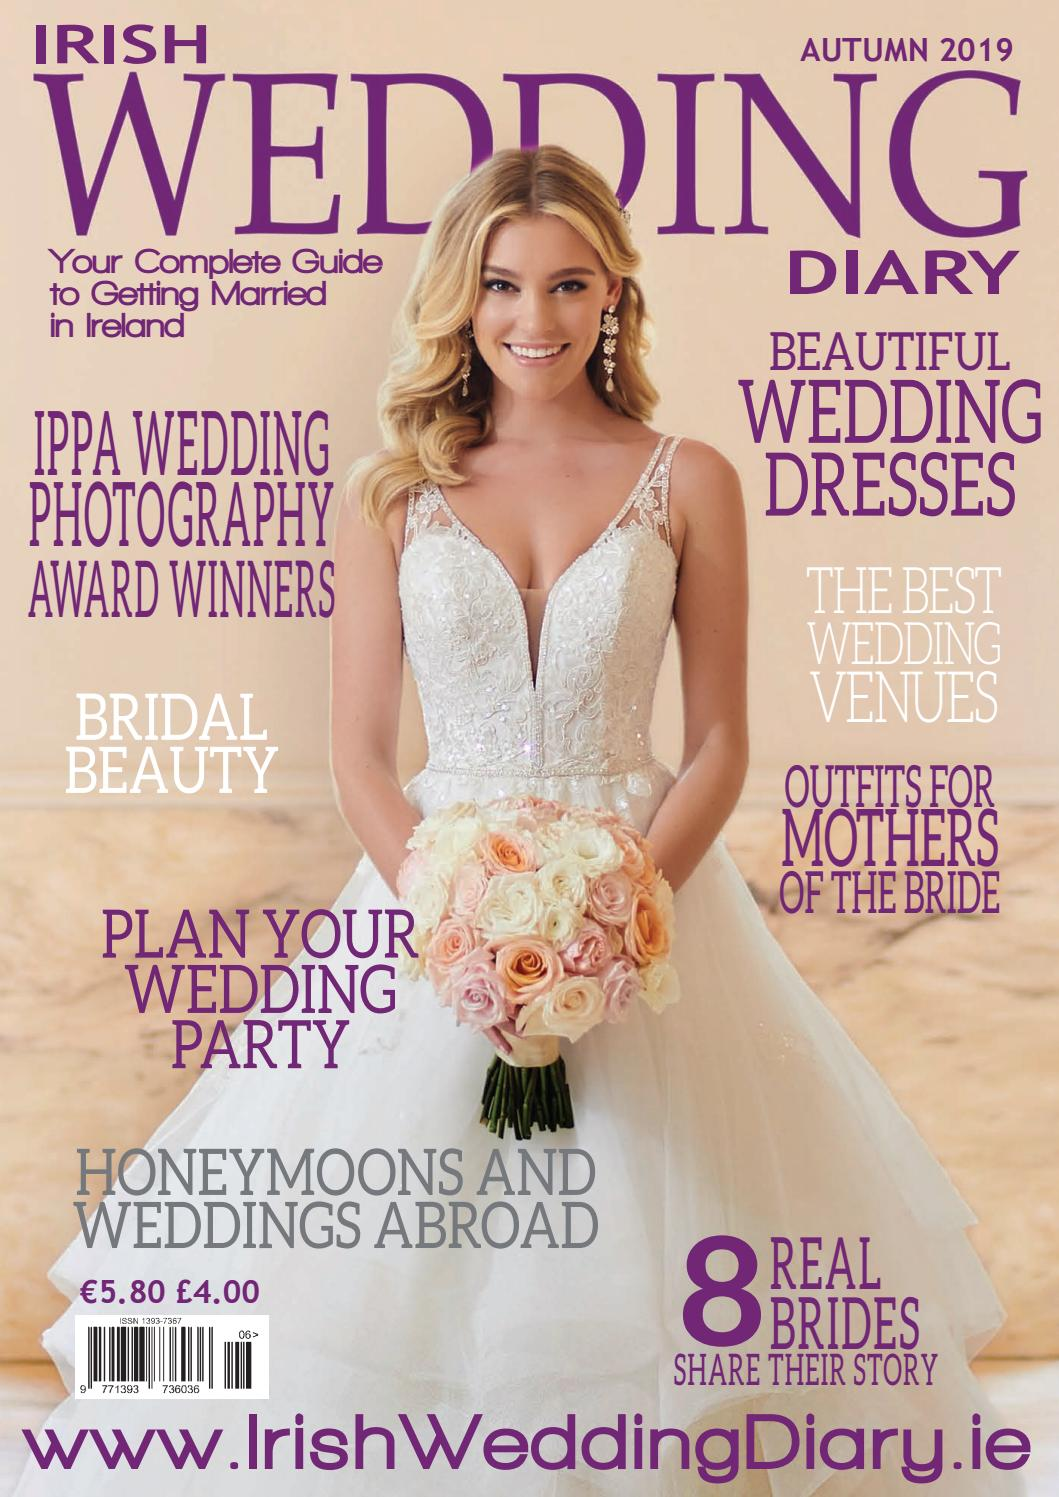 Irish Wedding Diary Autumn 2019 By Irish Wedding Diary Magazine